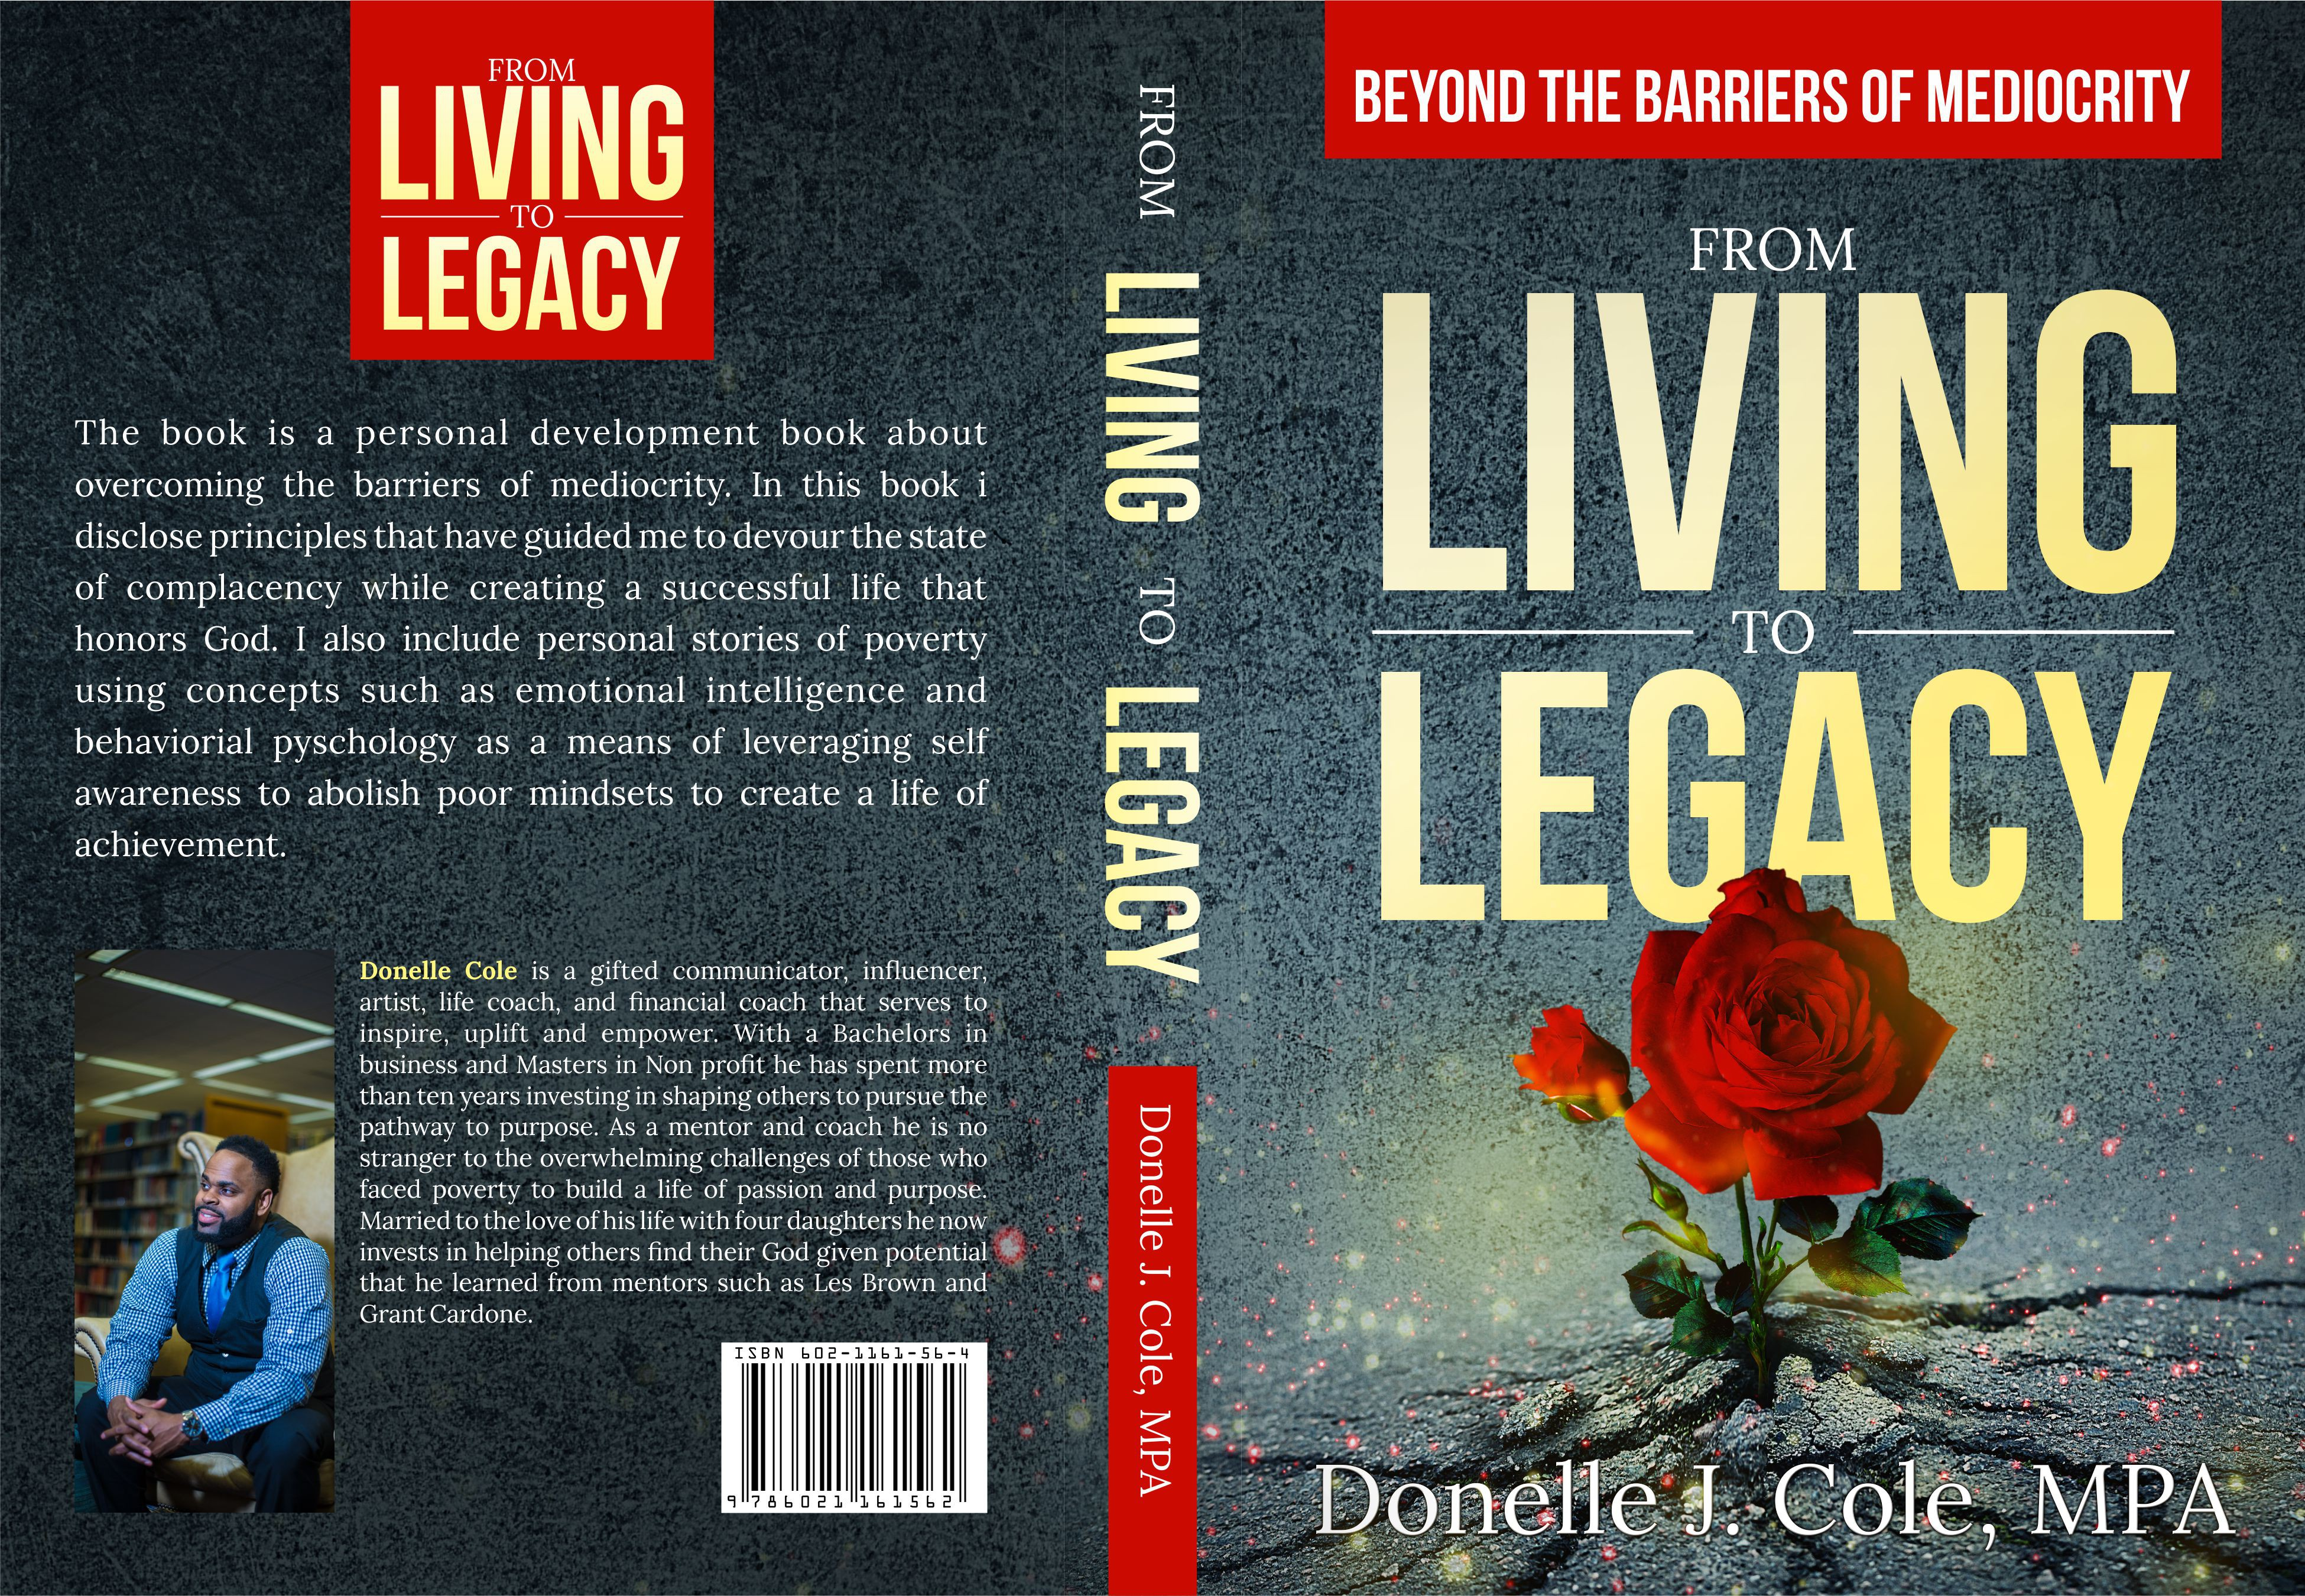 From Living to Legacy: Beyond the Barriers of Mediocrity